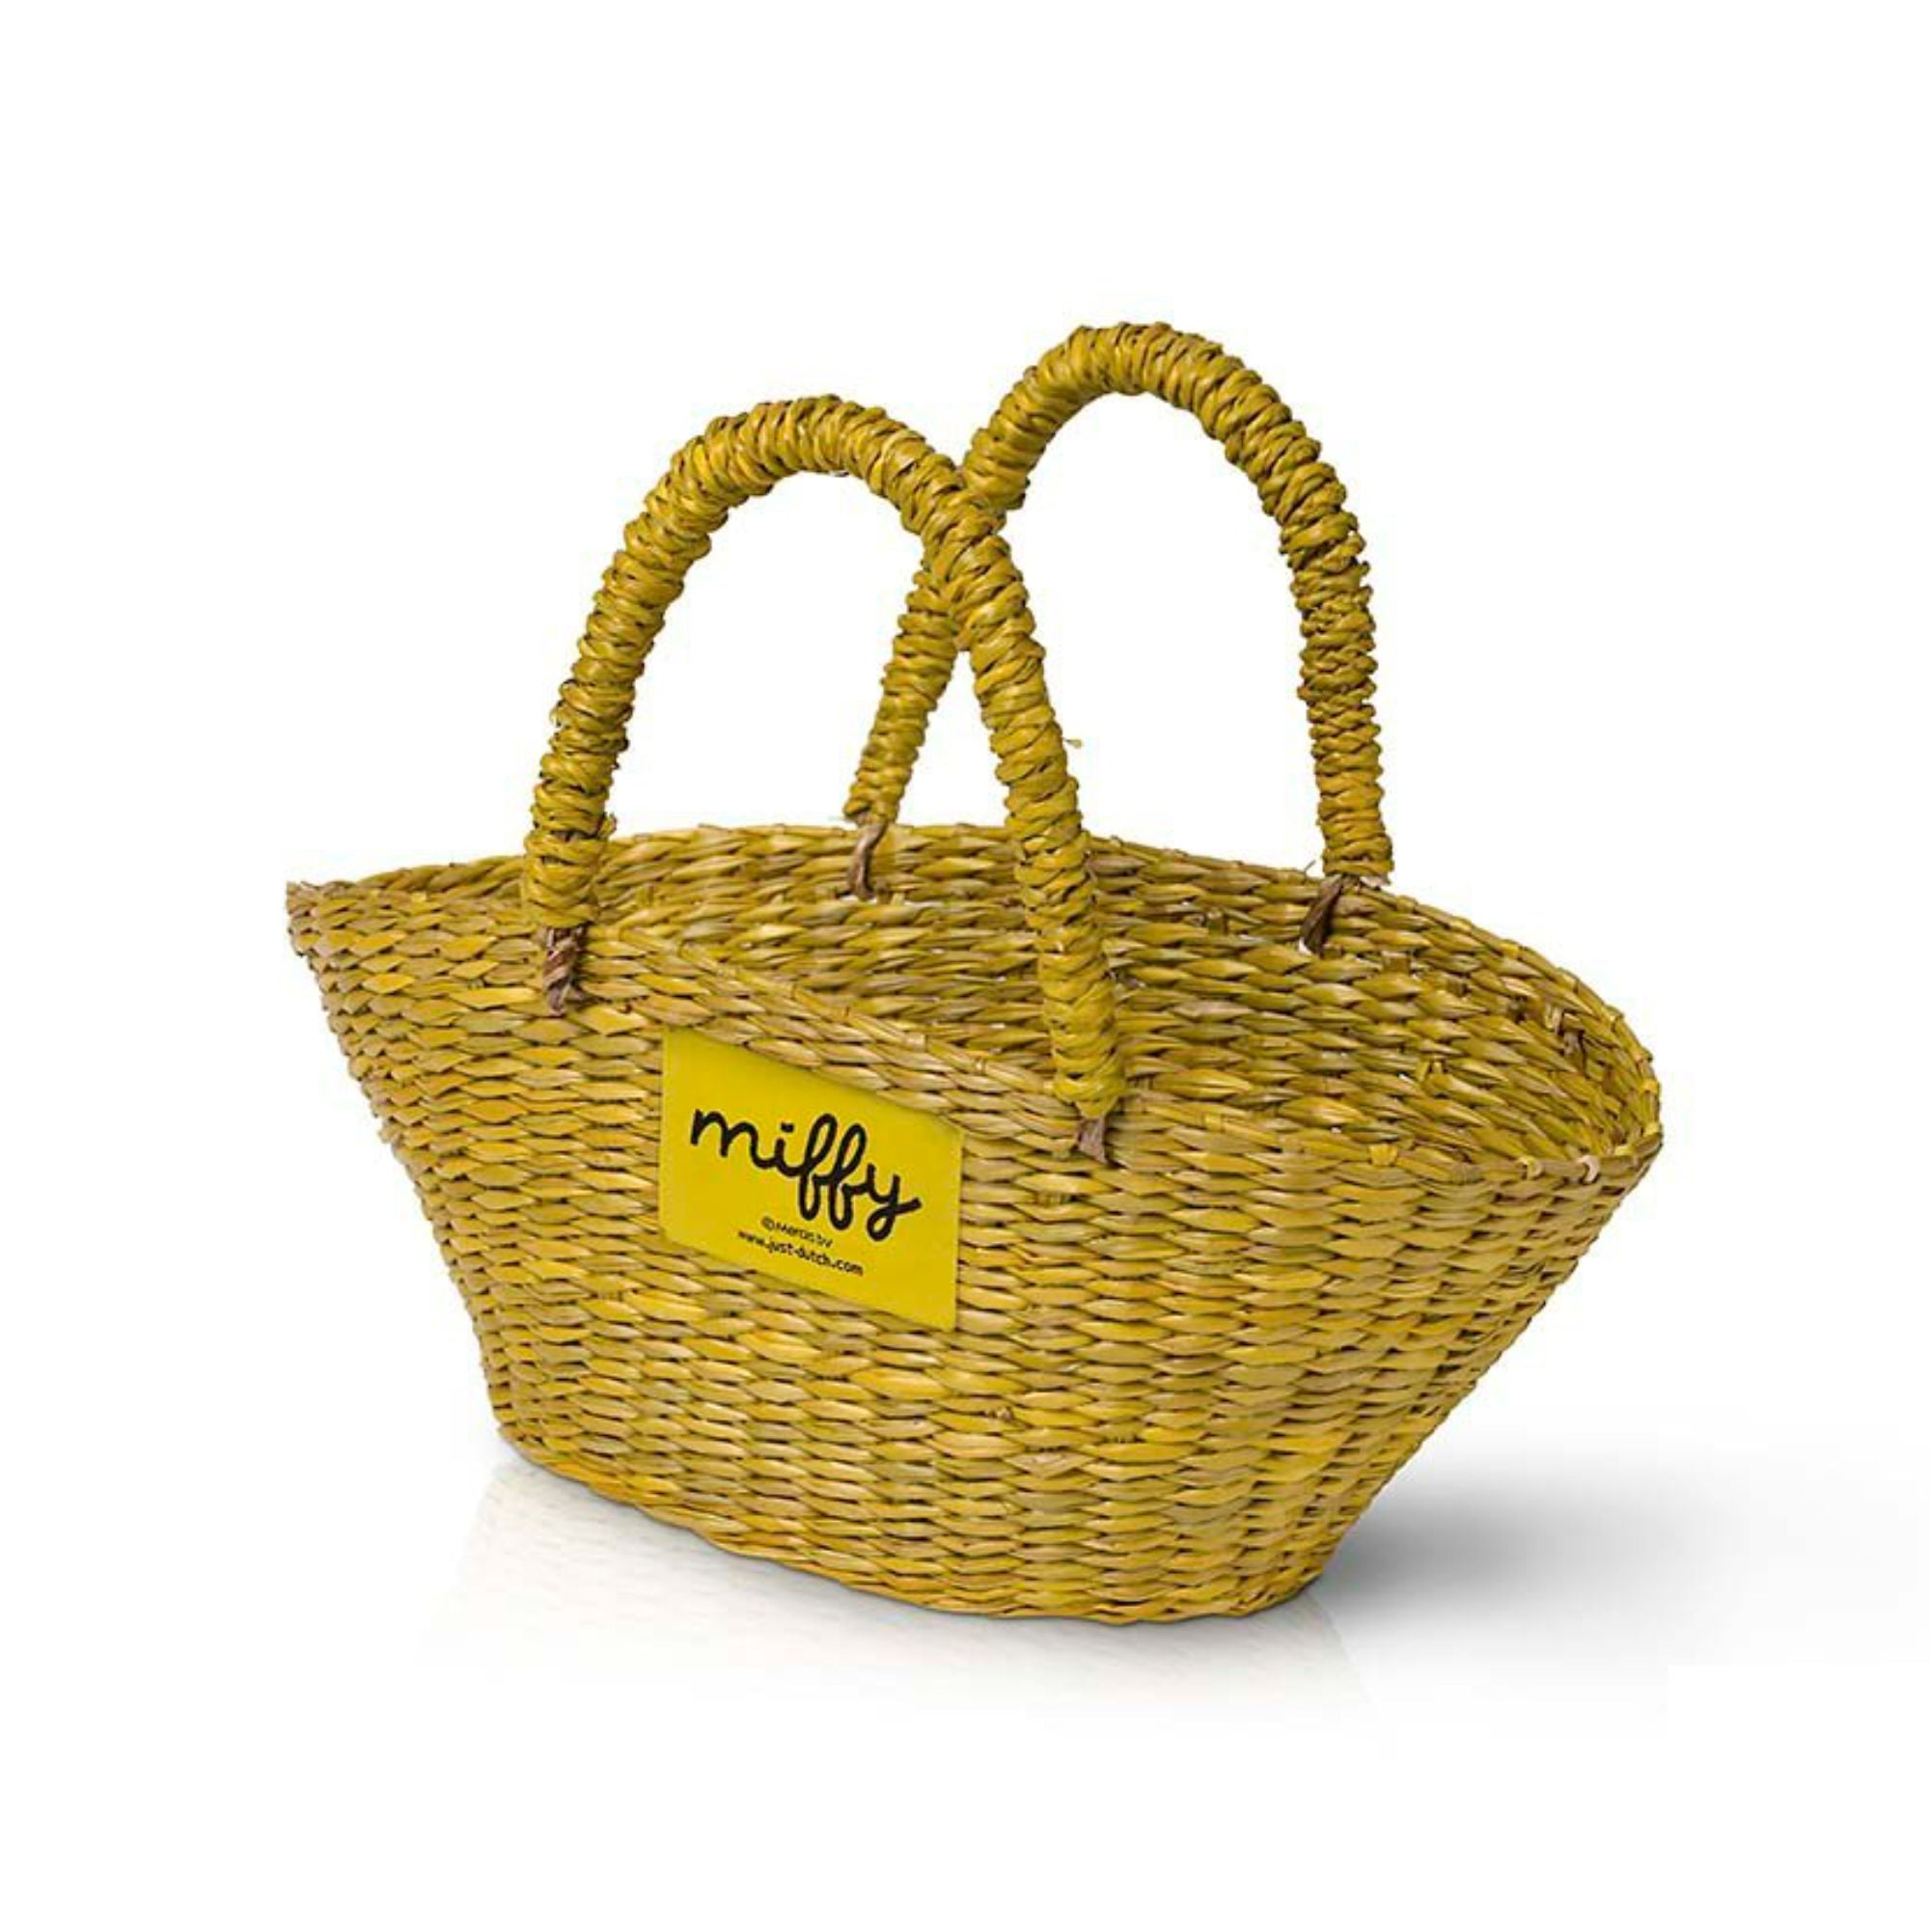 Just Dutch Handmade yellow basket for Miffy dolls